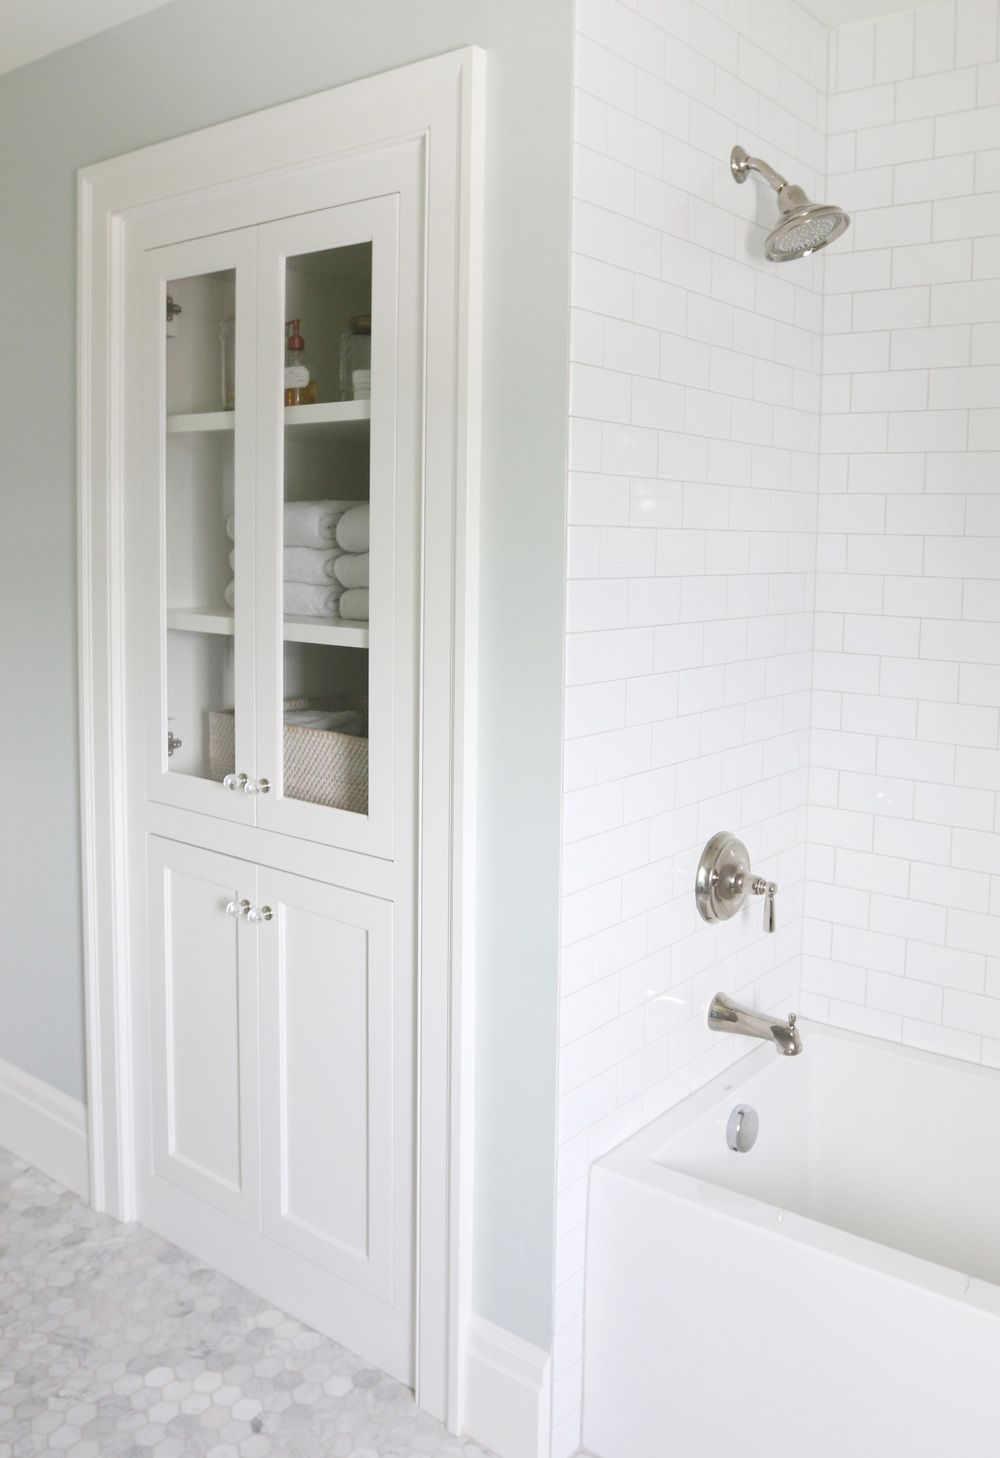 Gray and white marble subway tile on shower wall and baseboard - Subway Tile Shower With Gray Grout Studio Mcgee